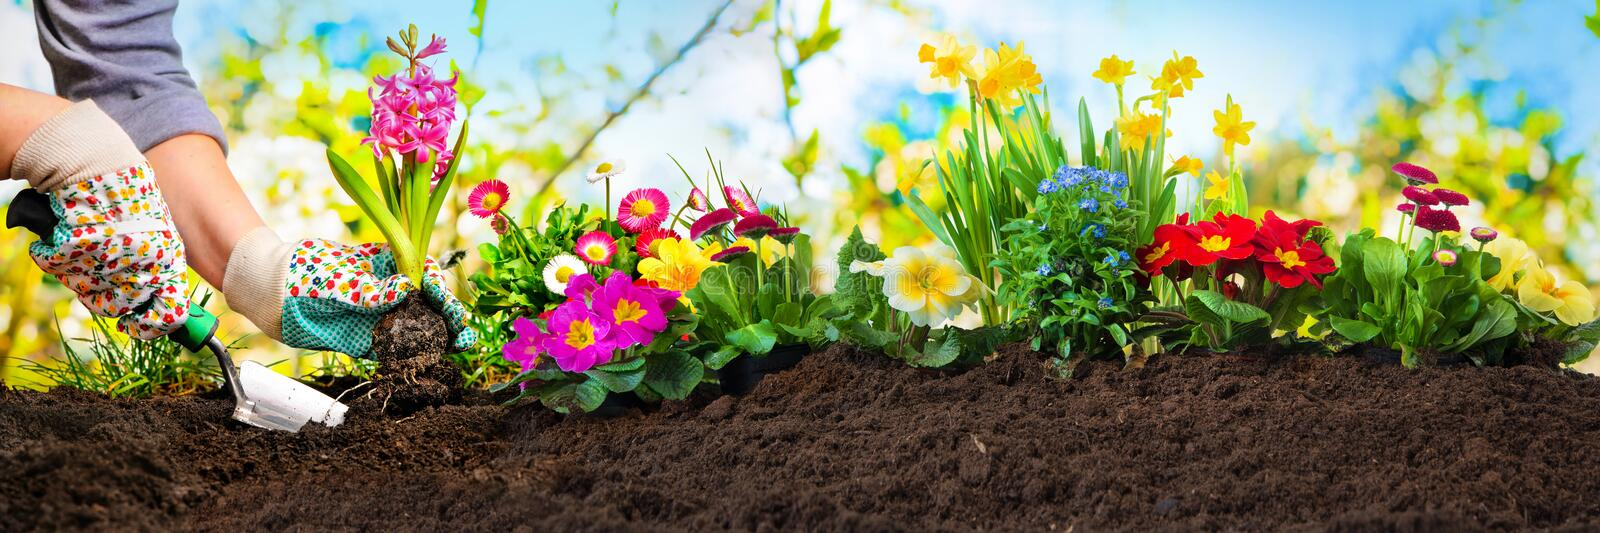 Planting flowers in a garden stock image